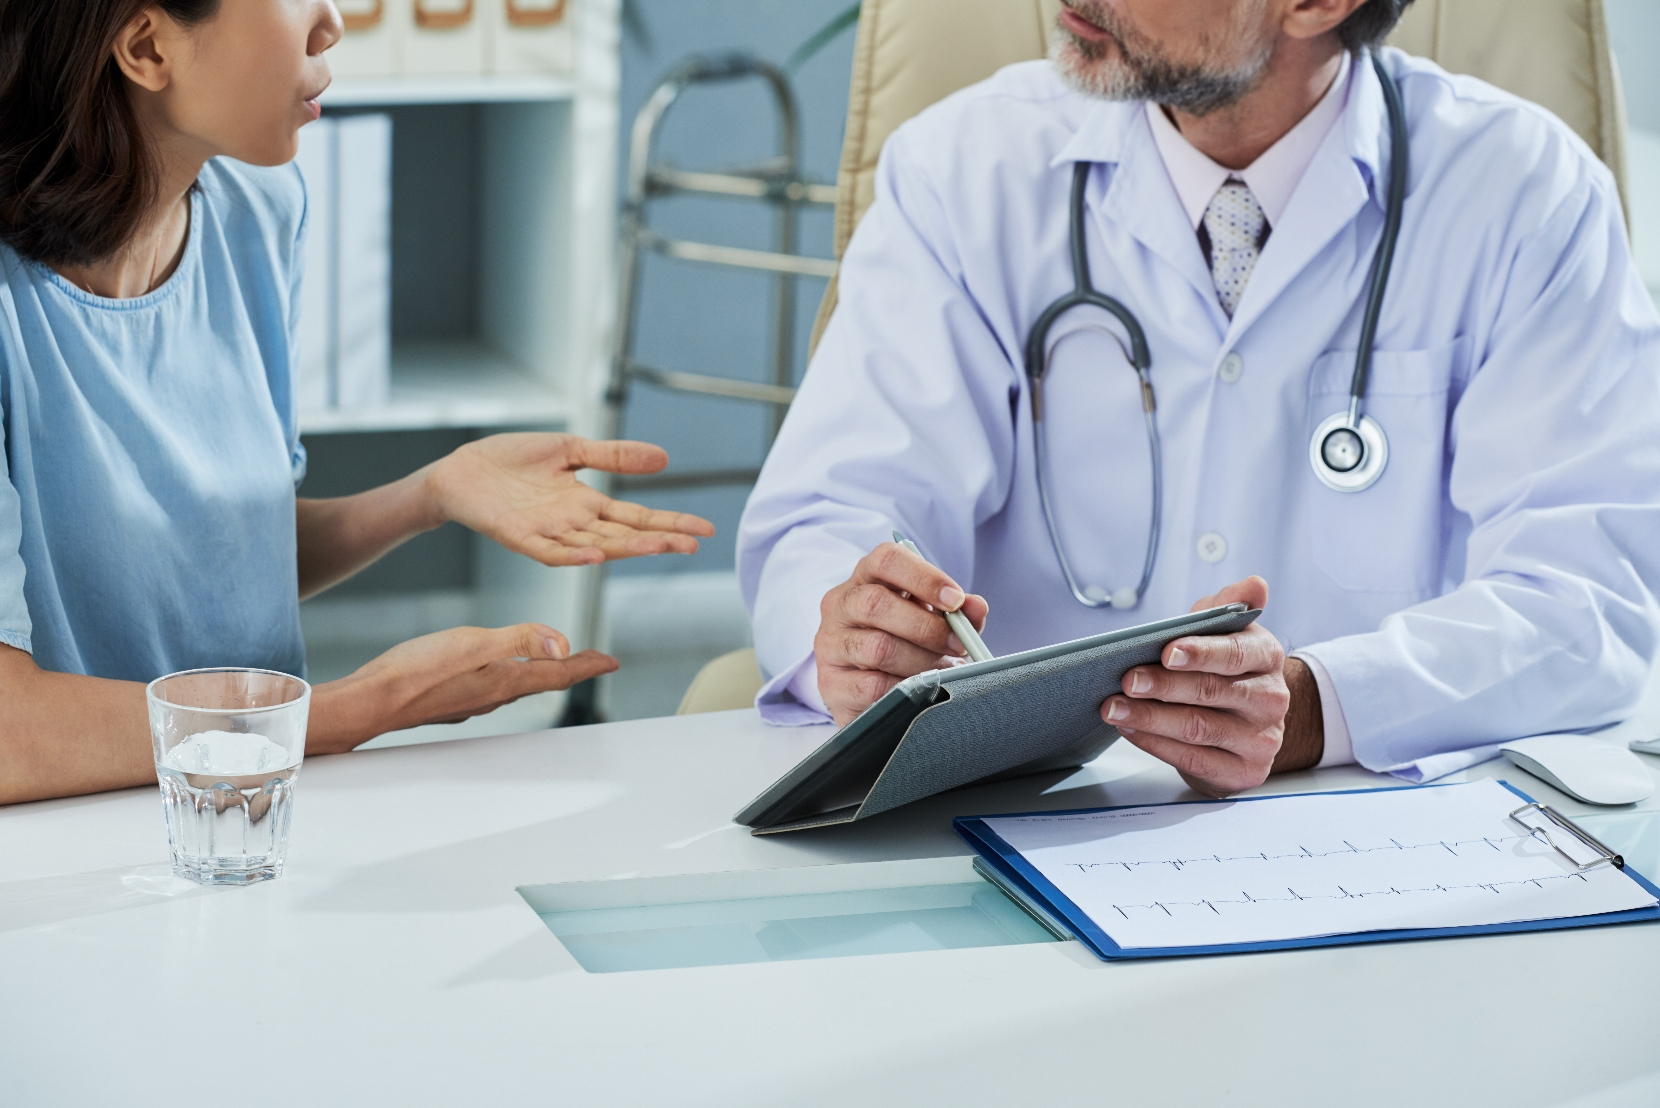 Primary care for women